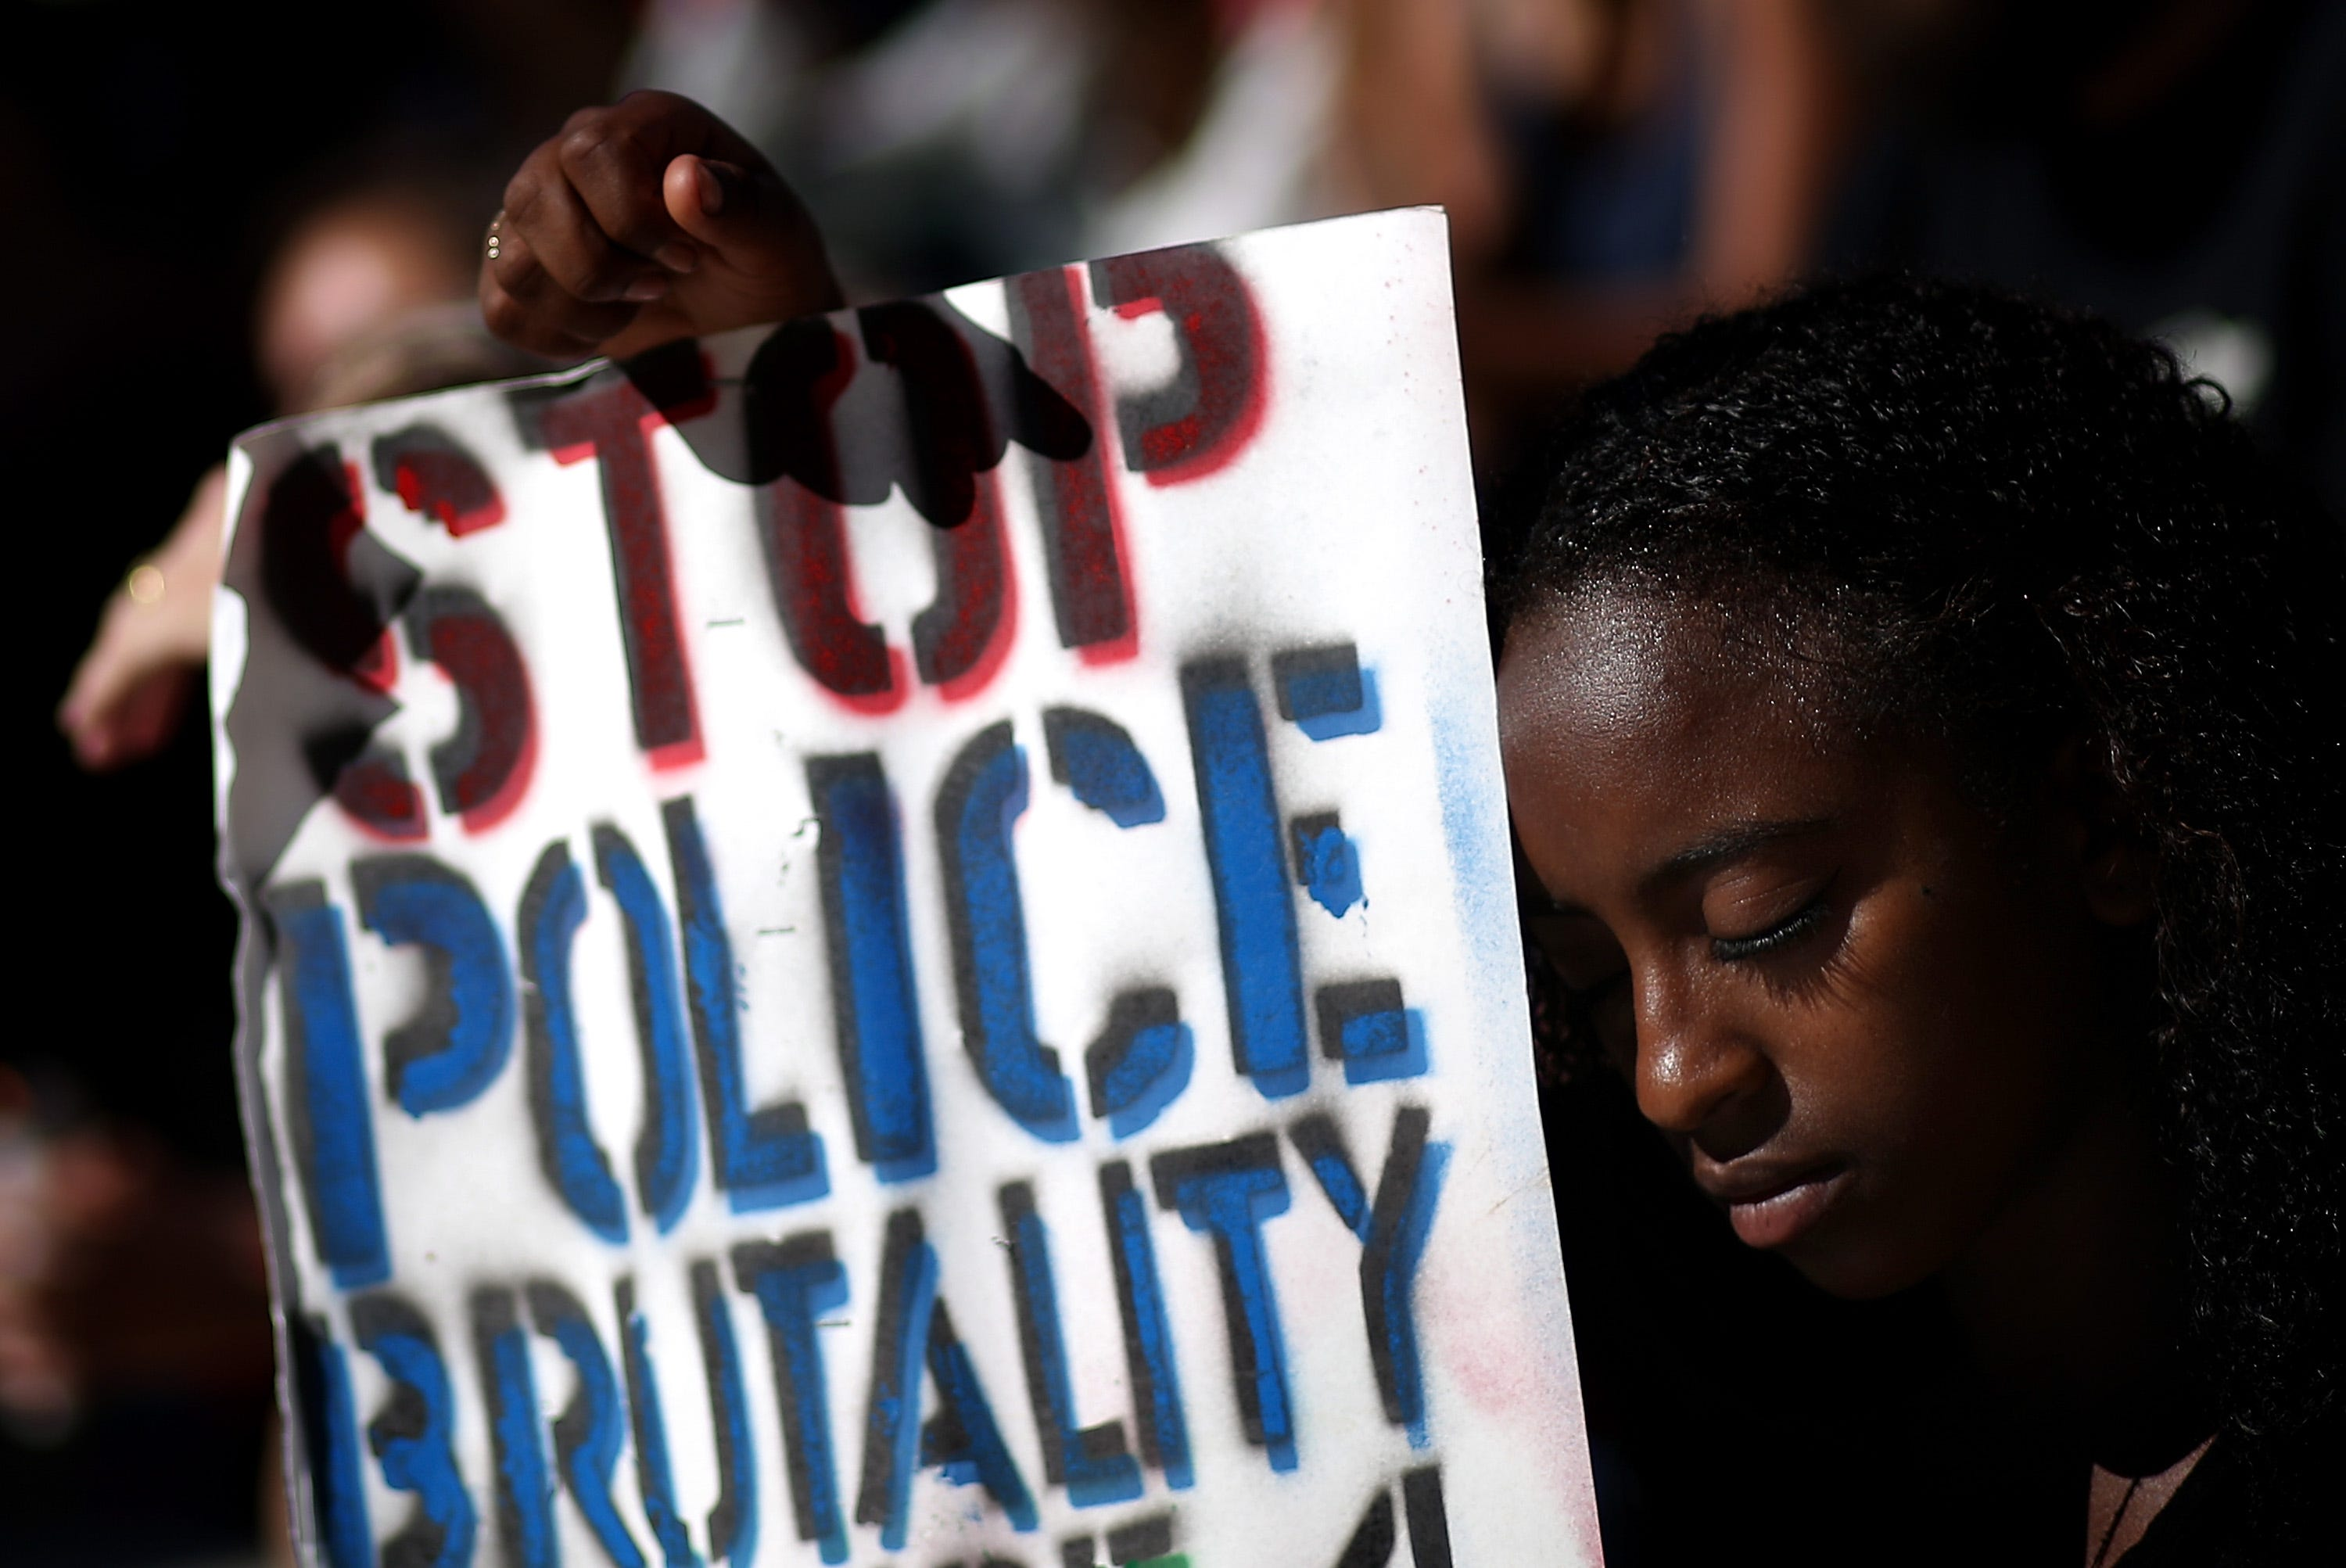 A demonstrator in Oakland, Calif., marks a moment of silence in solidarity with victims of police brutality in August 2014.